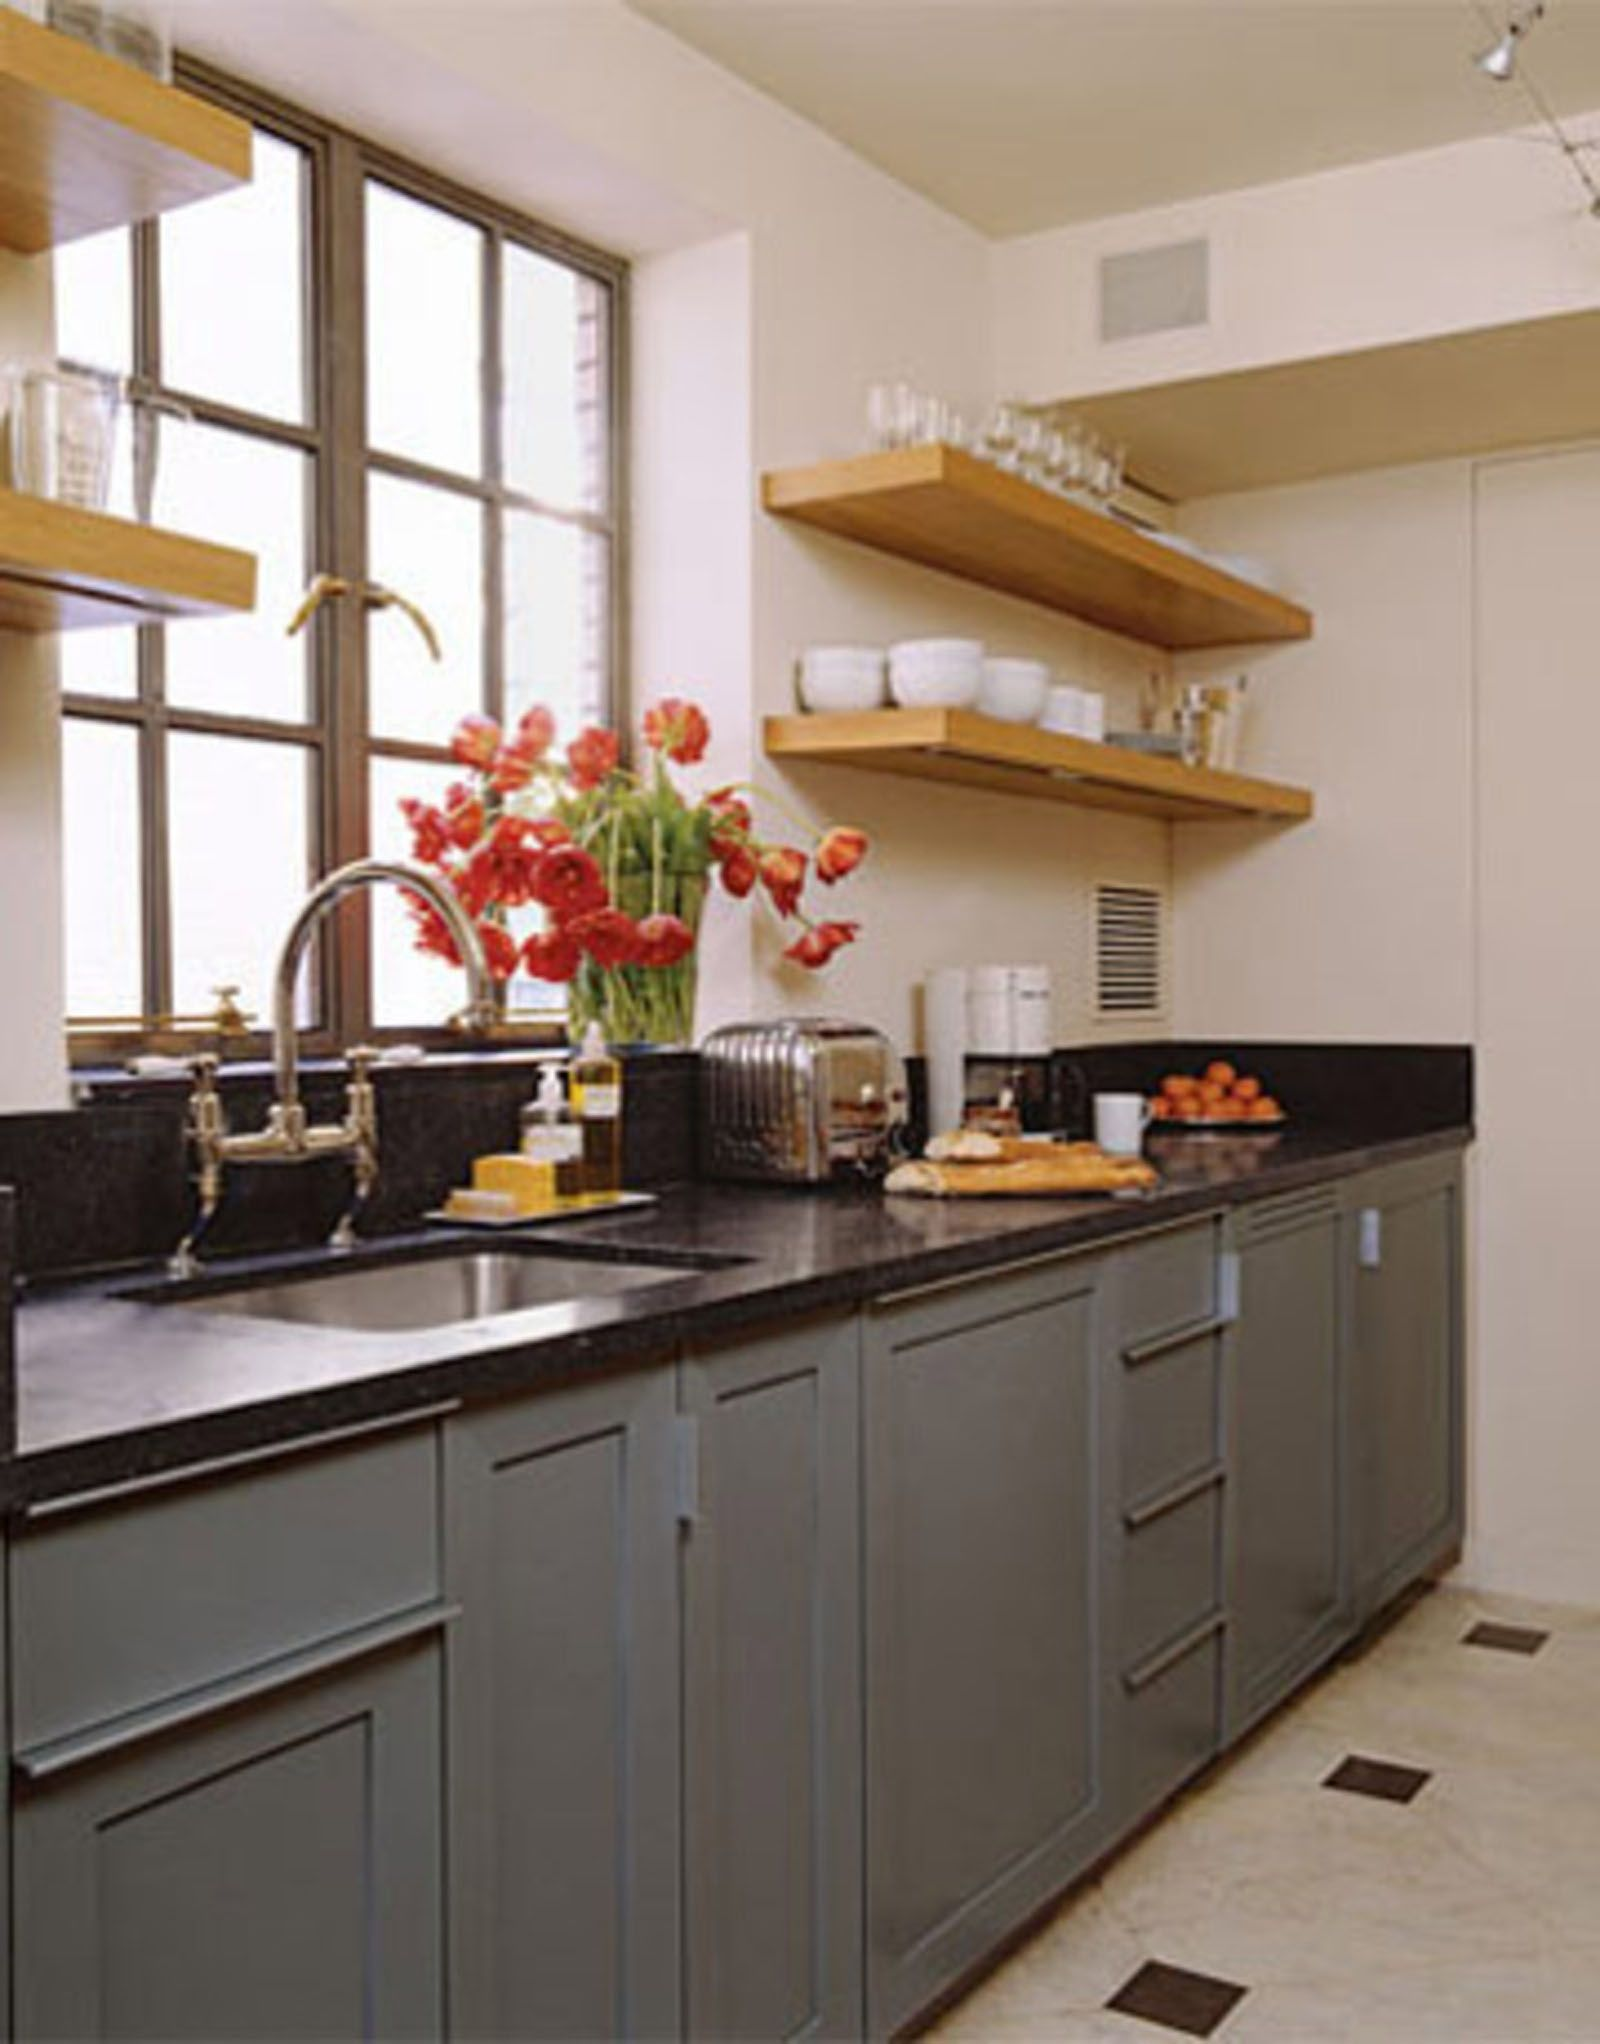 Sample Of Small Kitchen Design